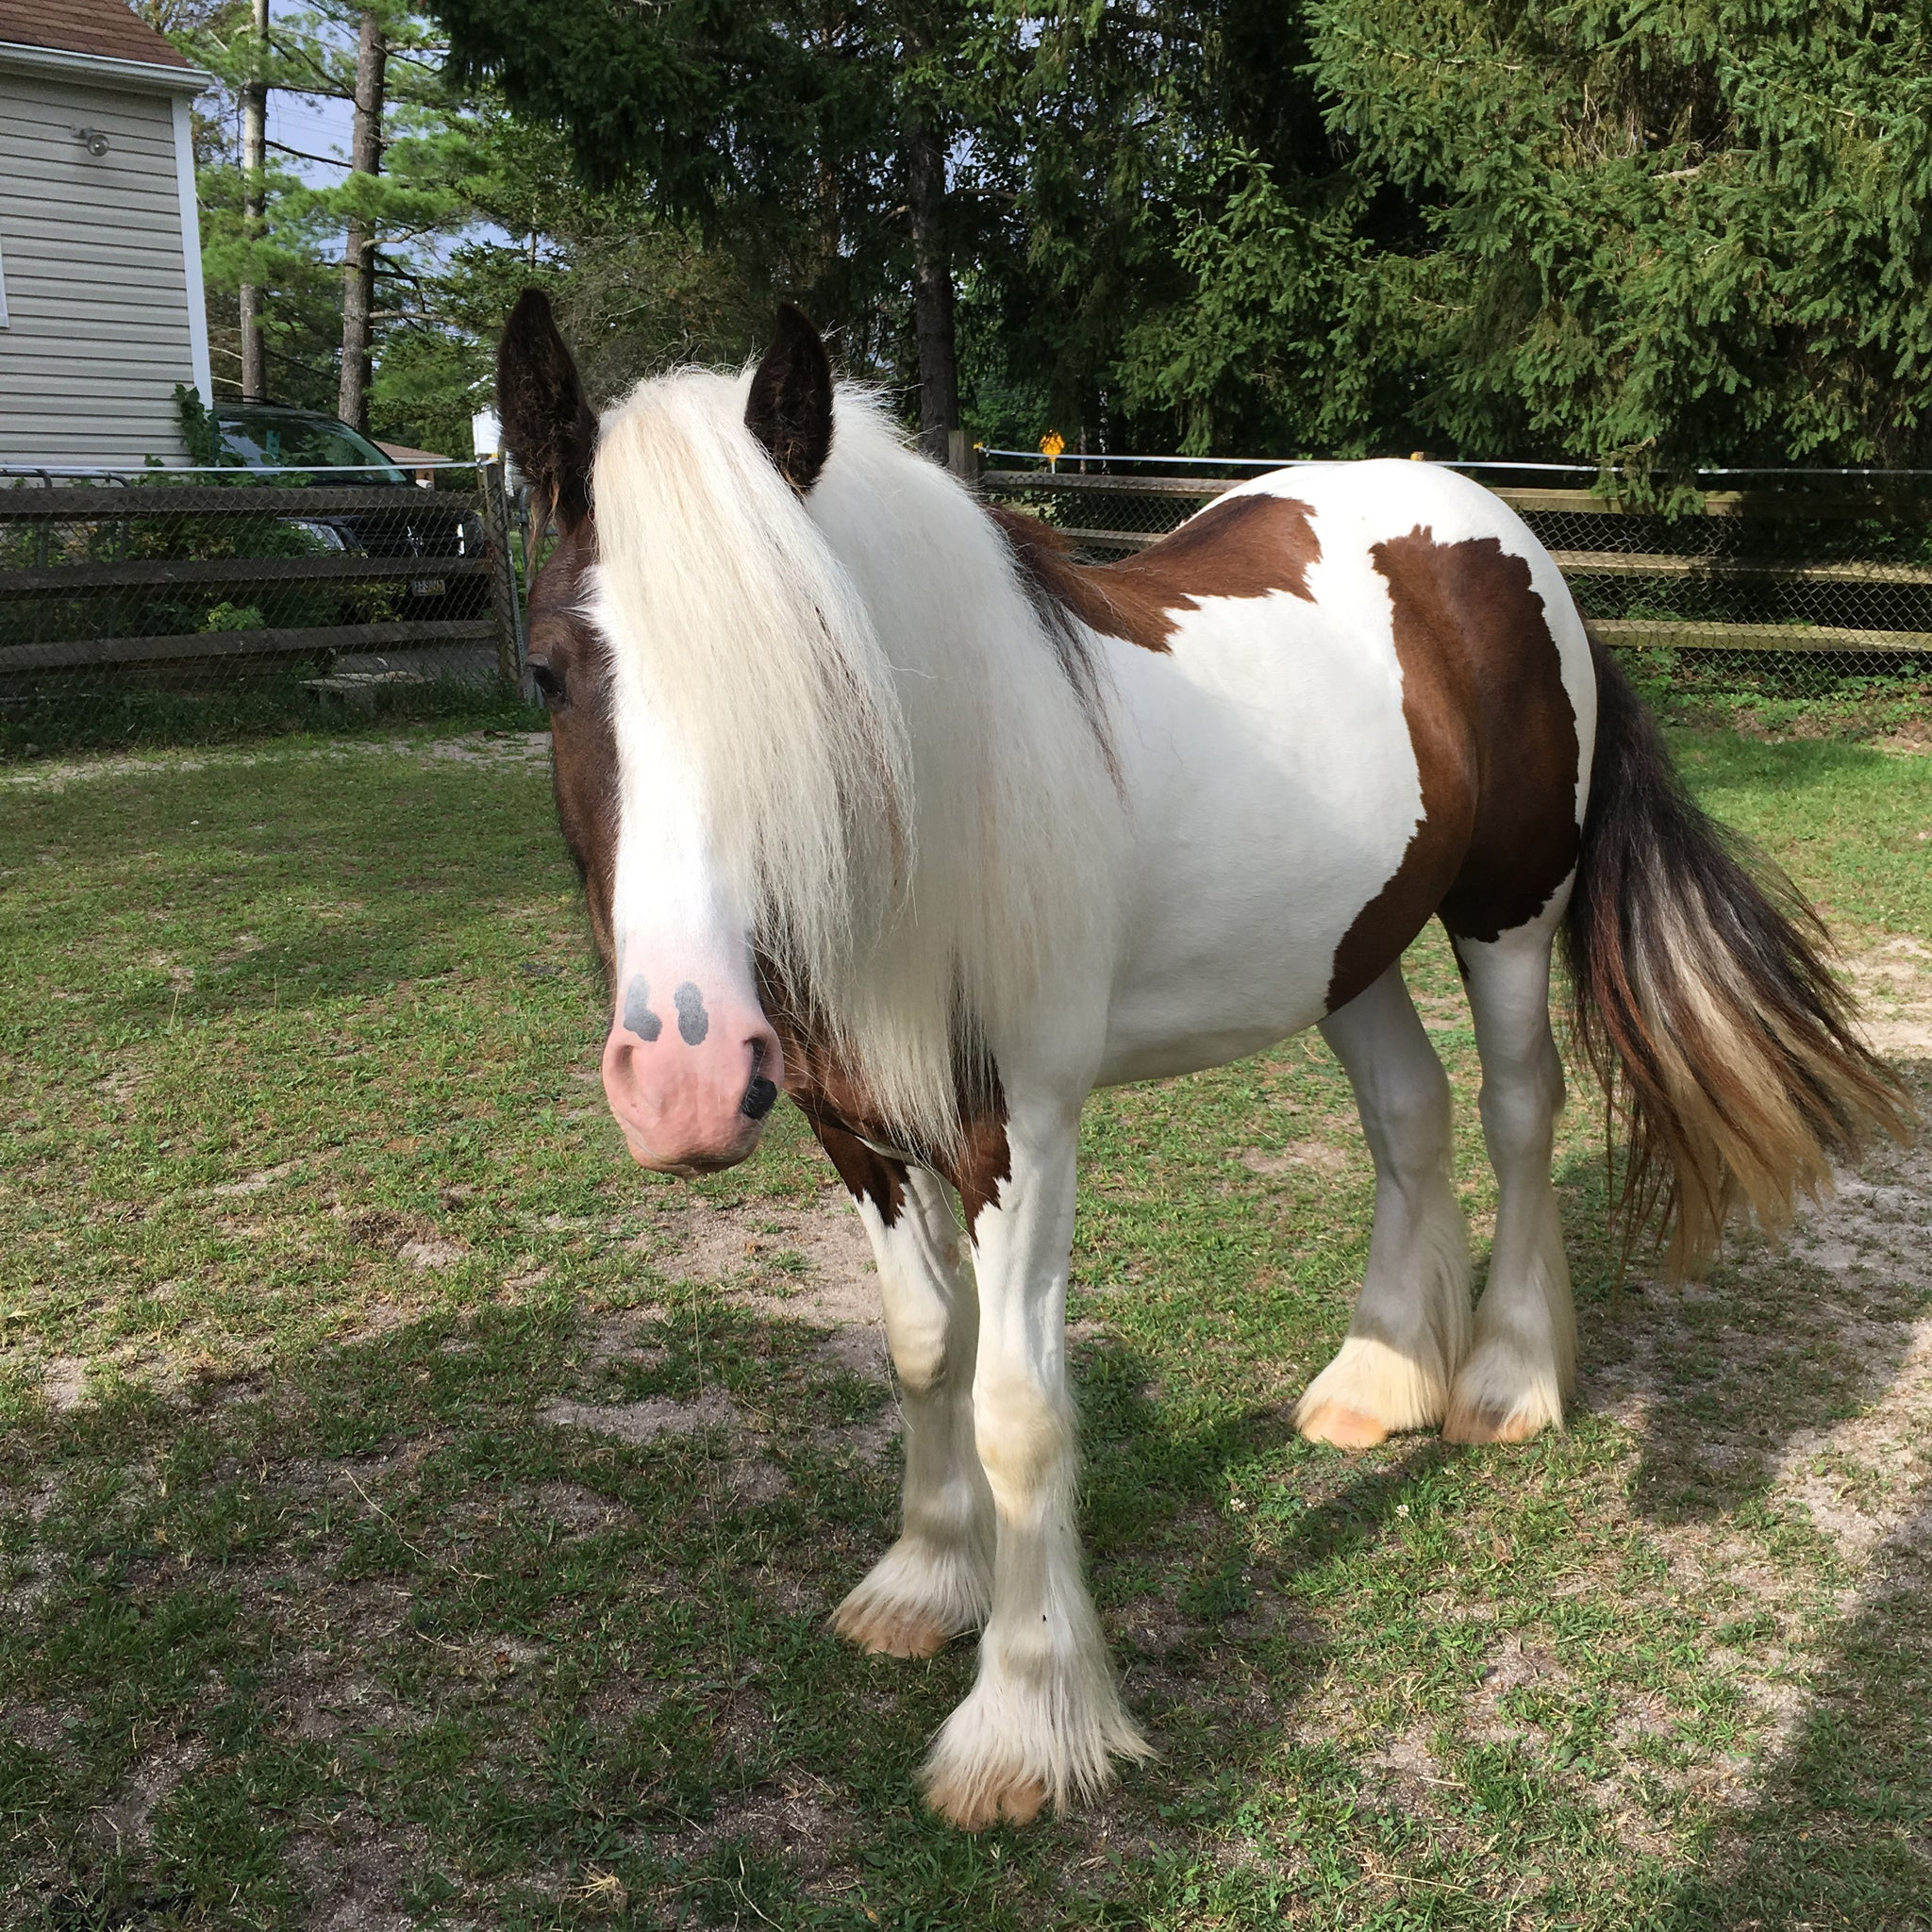 Hi! I'm Loki, the blogging horse! This is my journey!